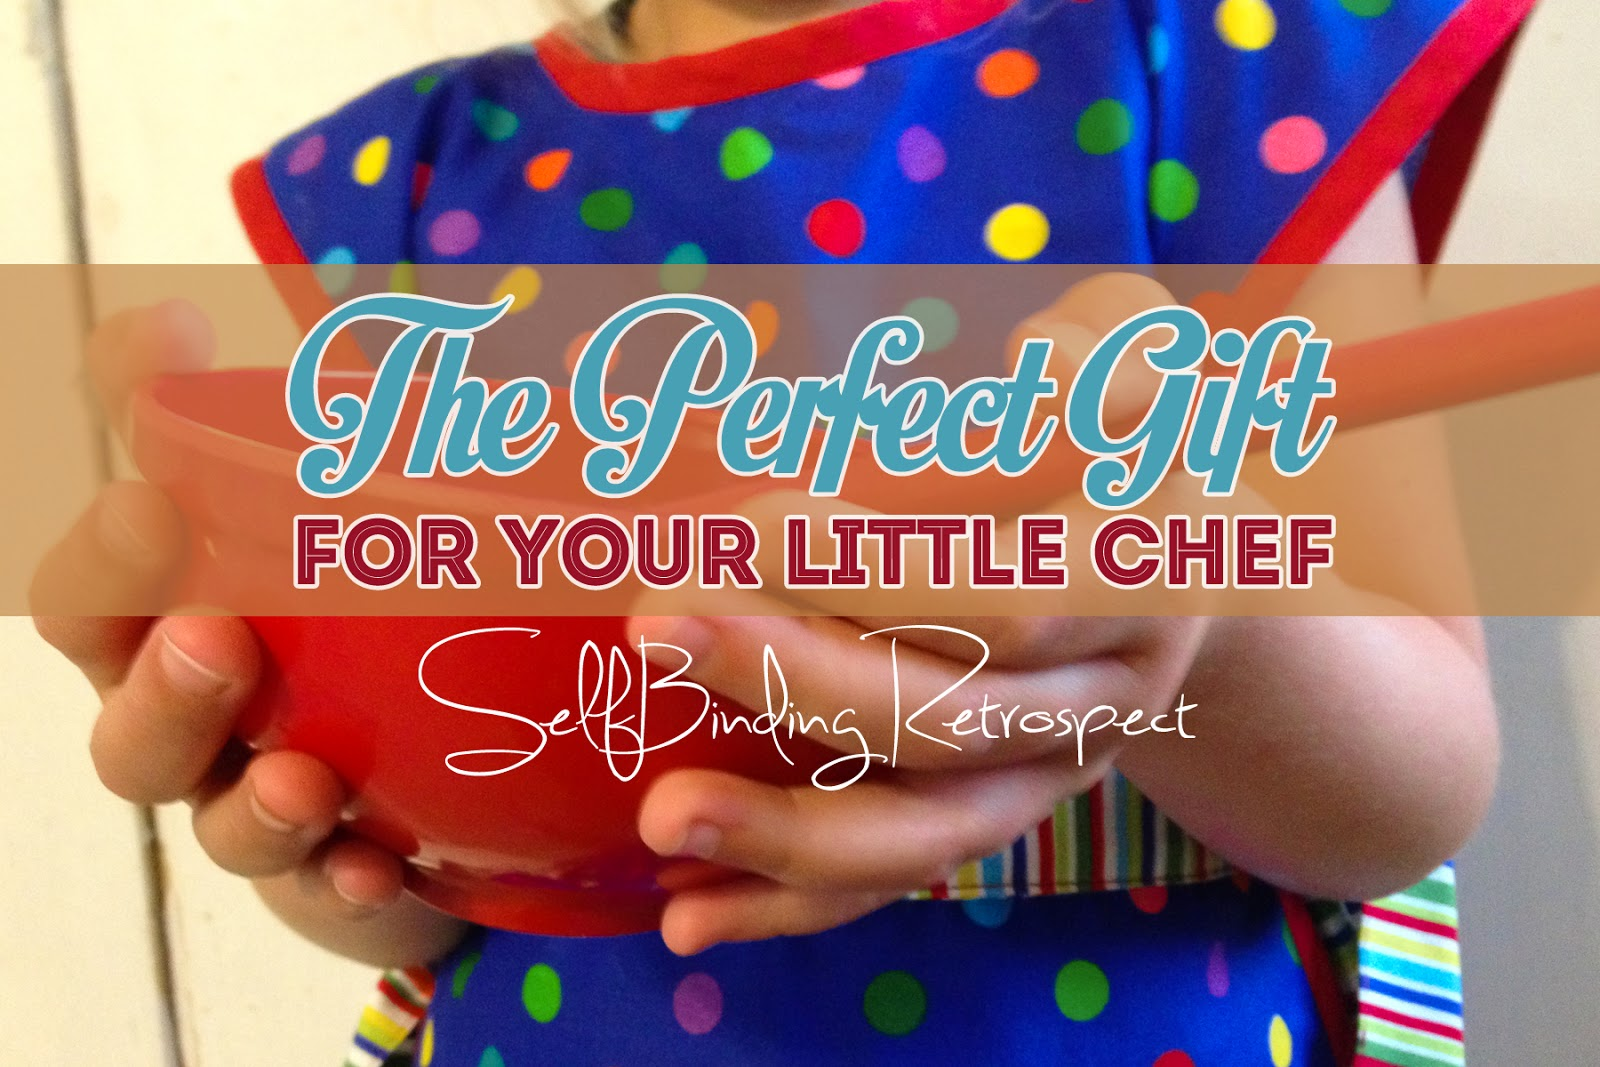 http://selfbindingretrospect.alannarusnak.com/2014/08/the-perfect-gift-for-your-little-chef.html